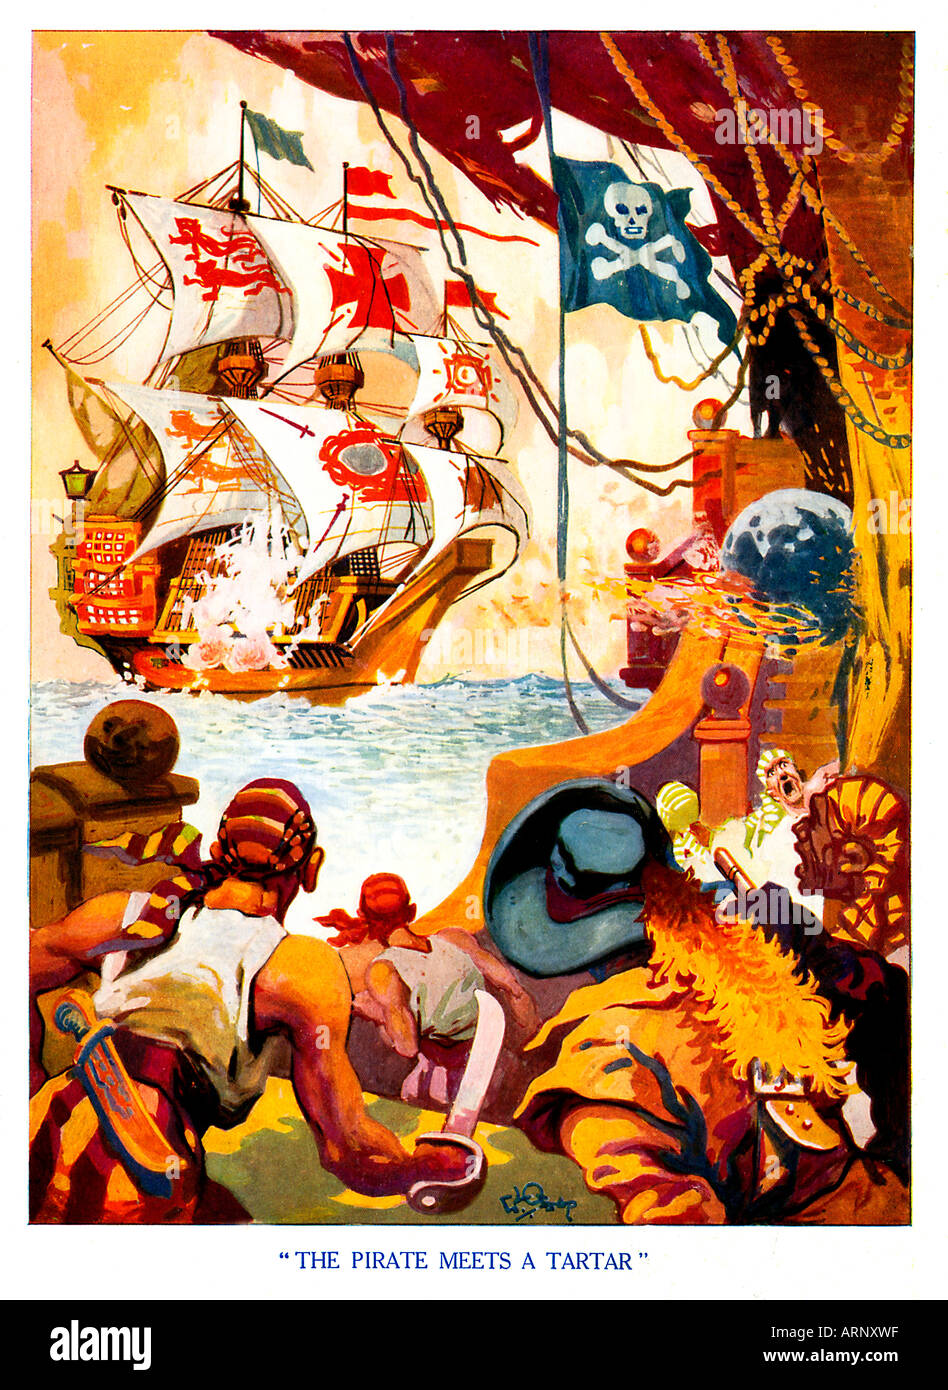 Pirate Meets a Tartar 1930s boys comic book illustration of a pirate ship going into battle Stock Photo